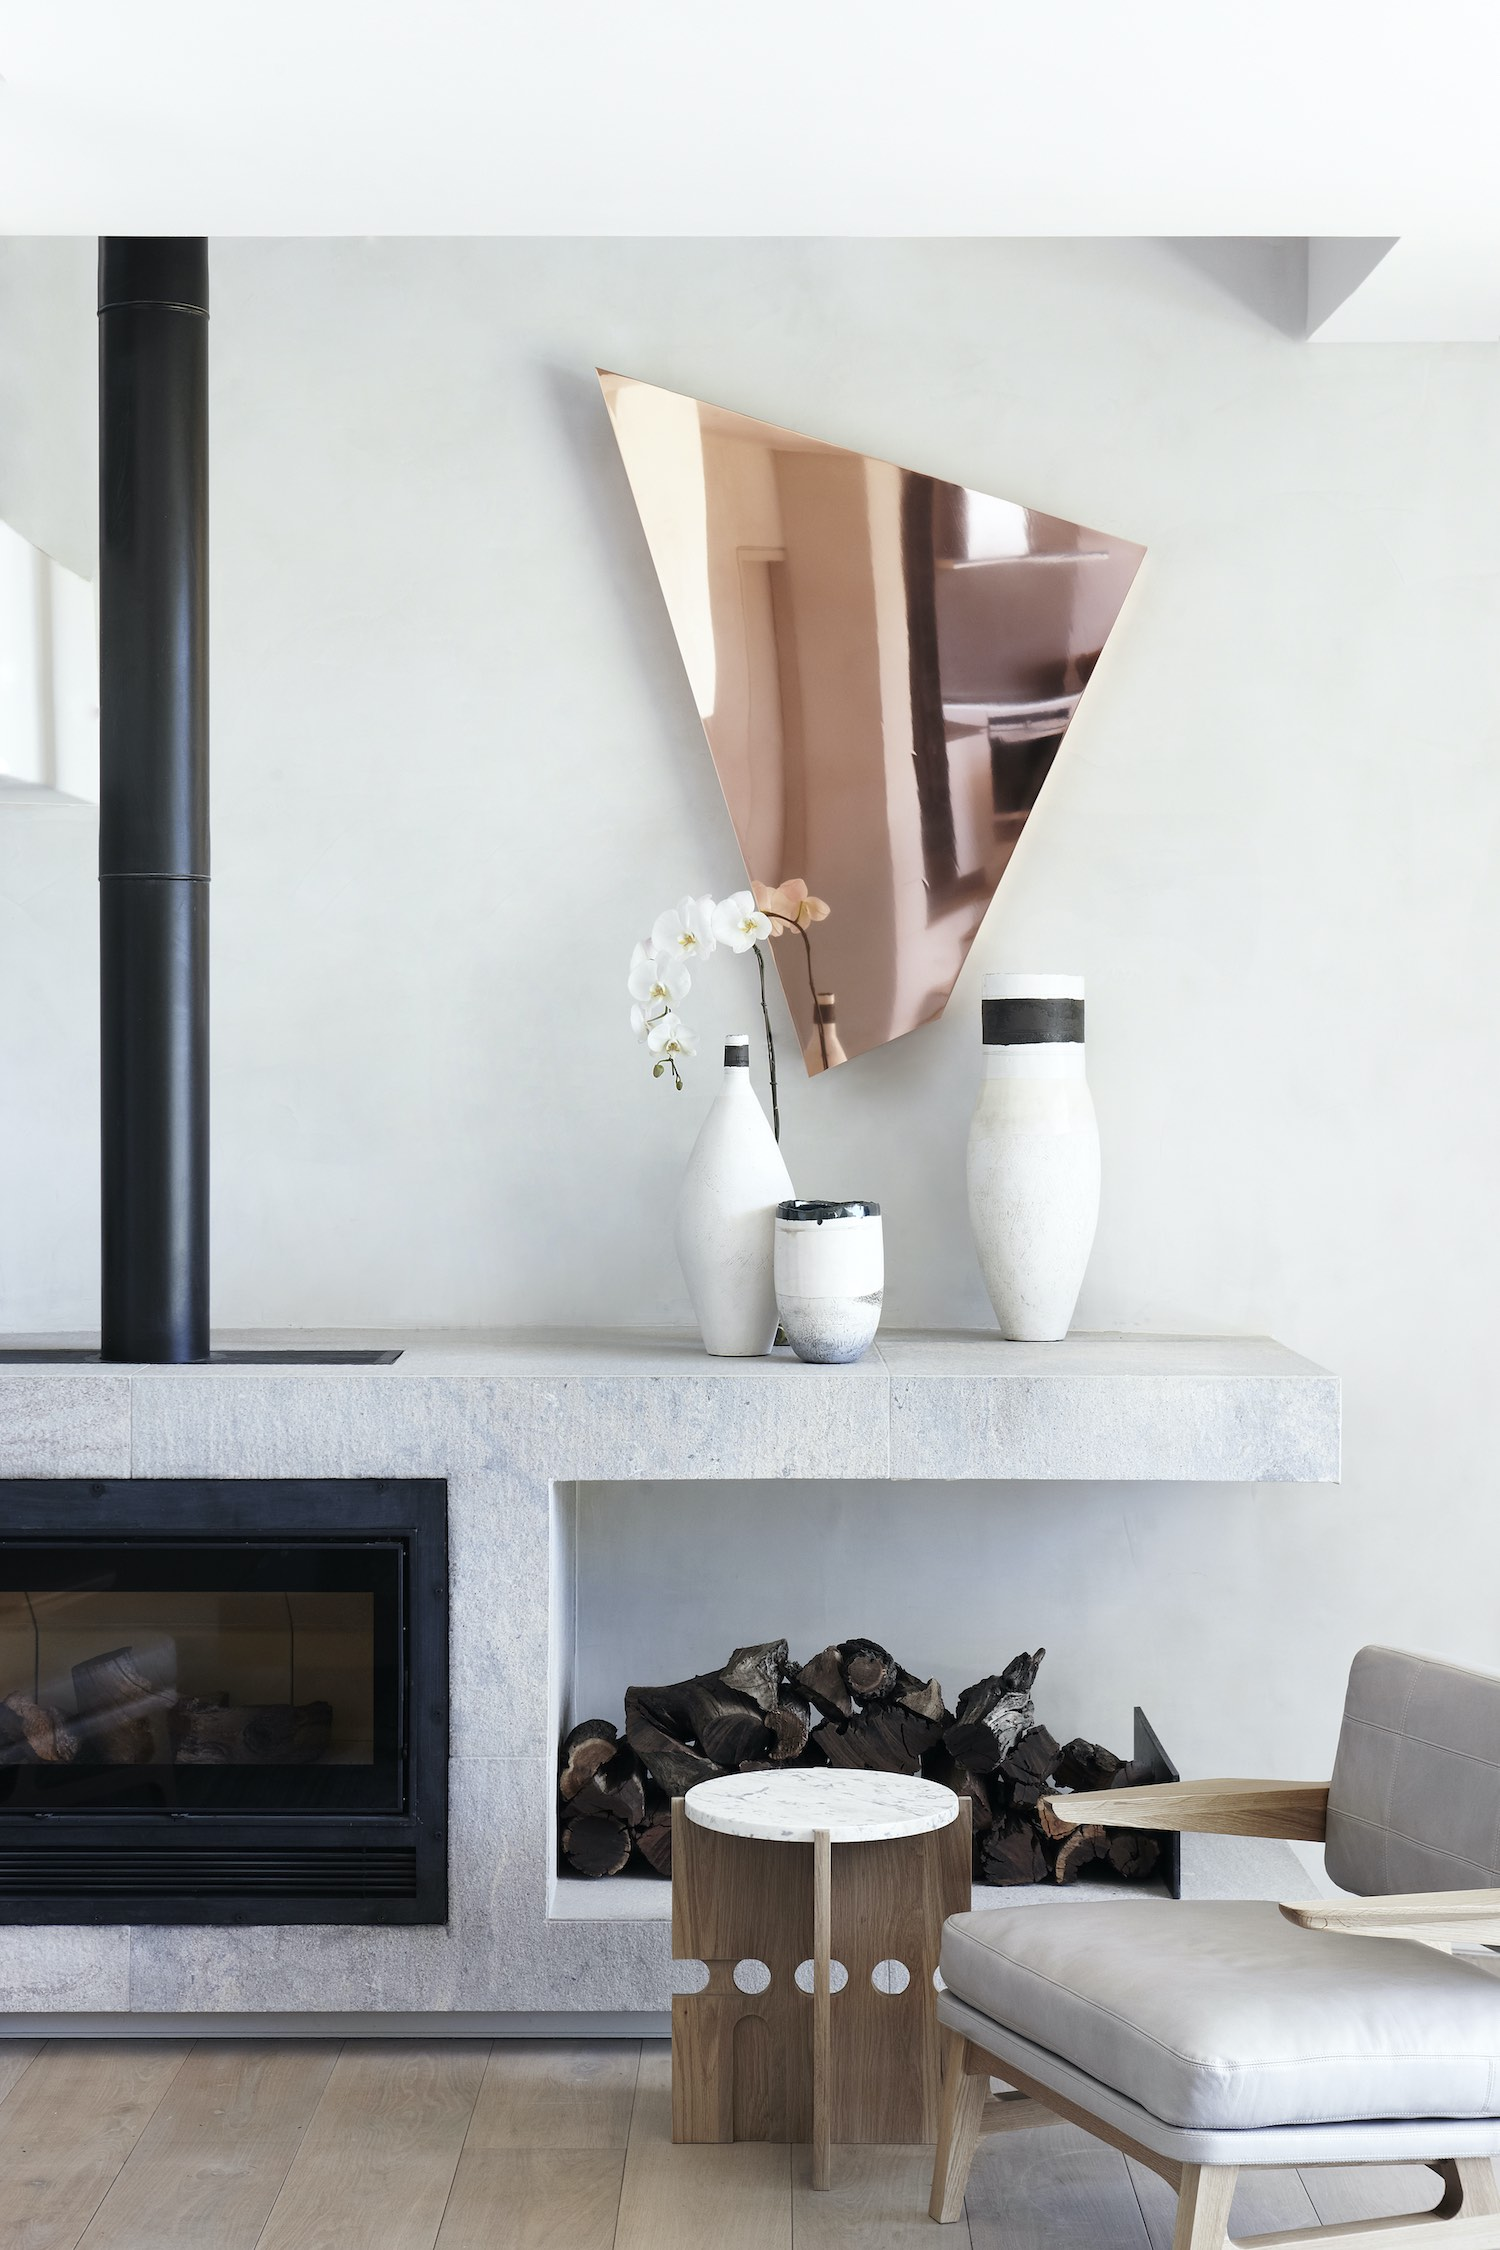 triangular mirror and flower post used as decoration near the fireplace